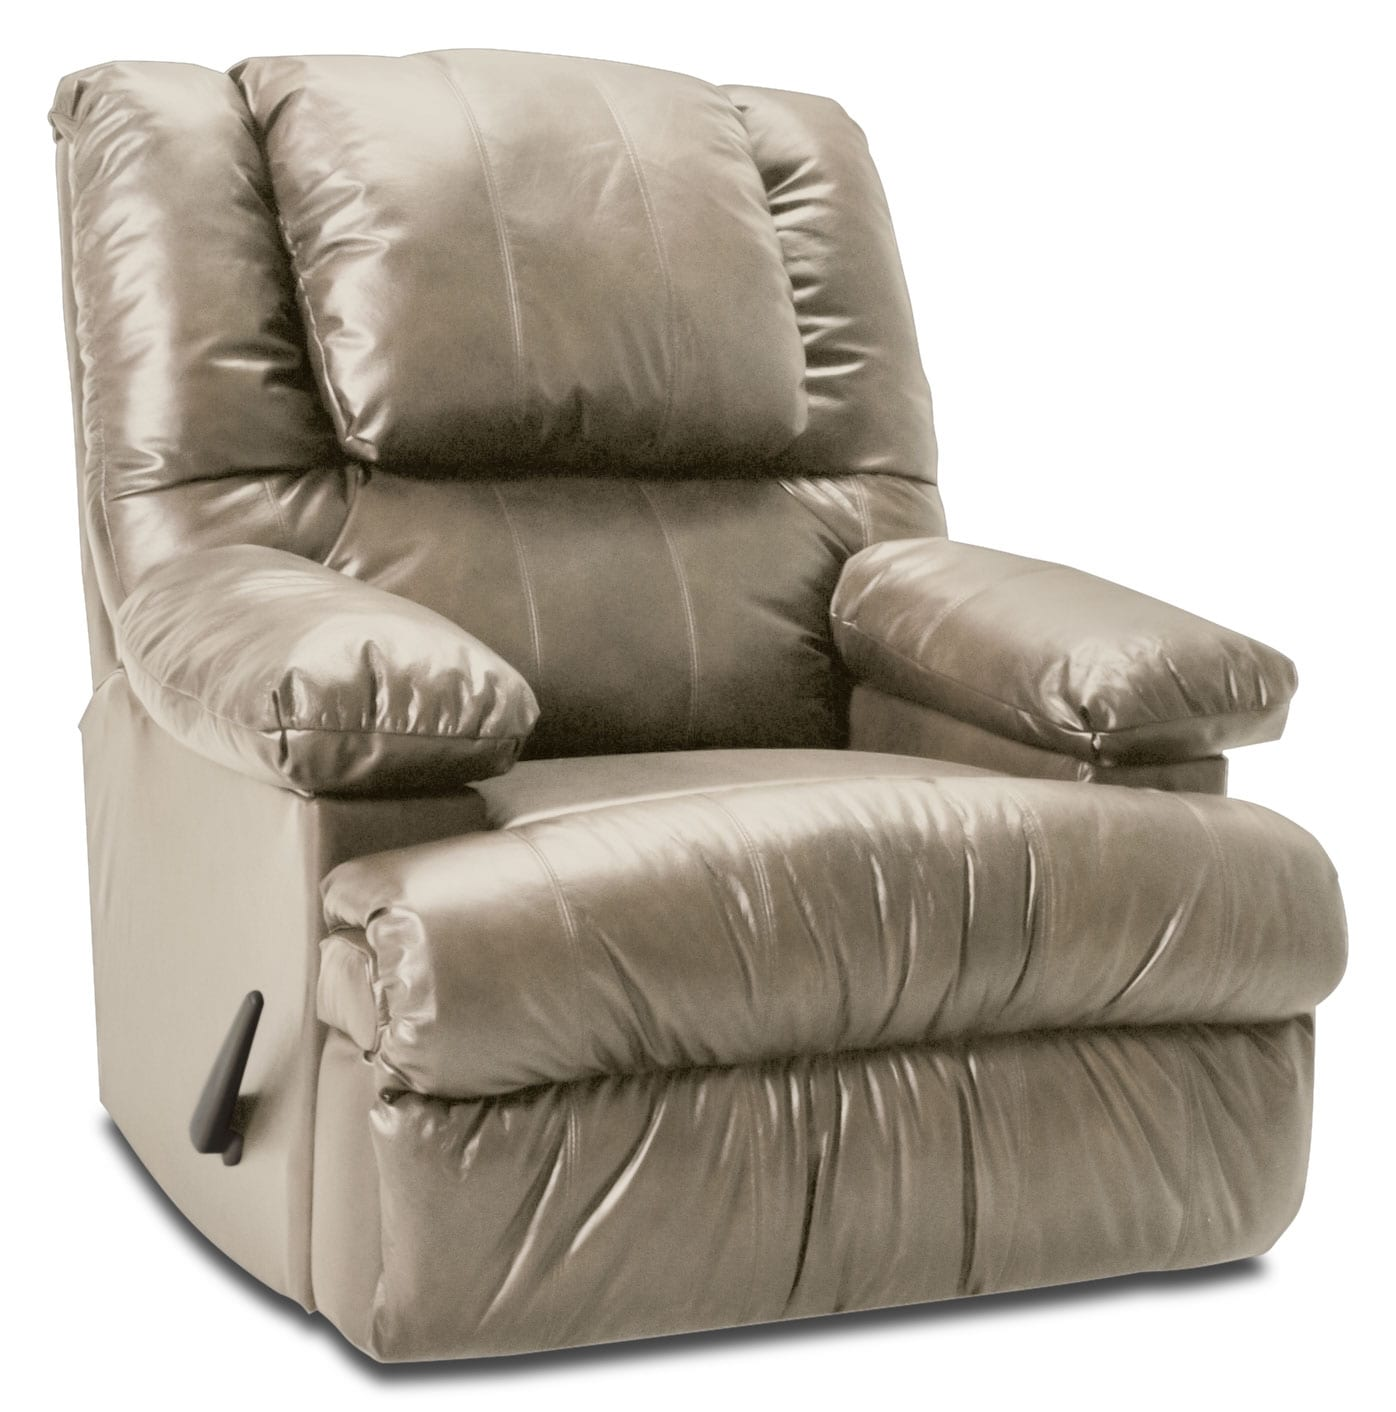 Living Room Furniture - Designed2B Recliner 5598 Bonded Leather Rocker with Storage Arms - Putty